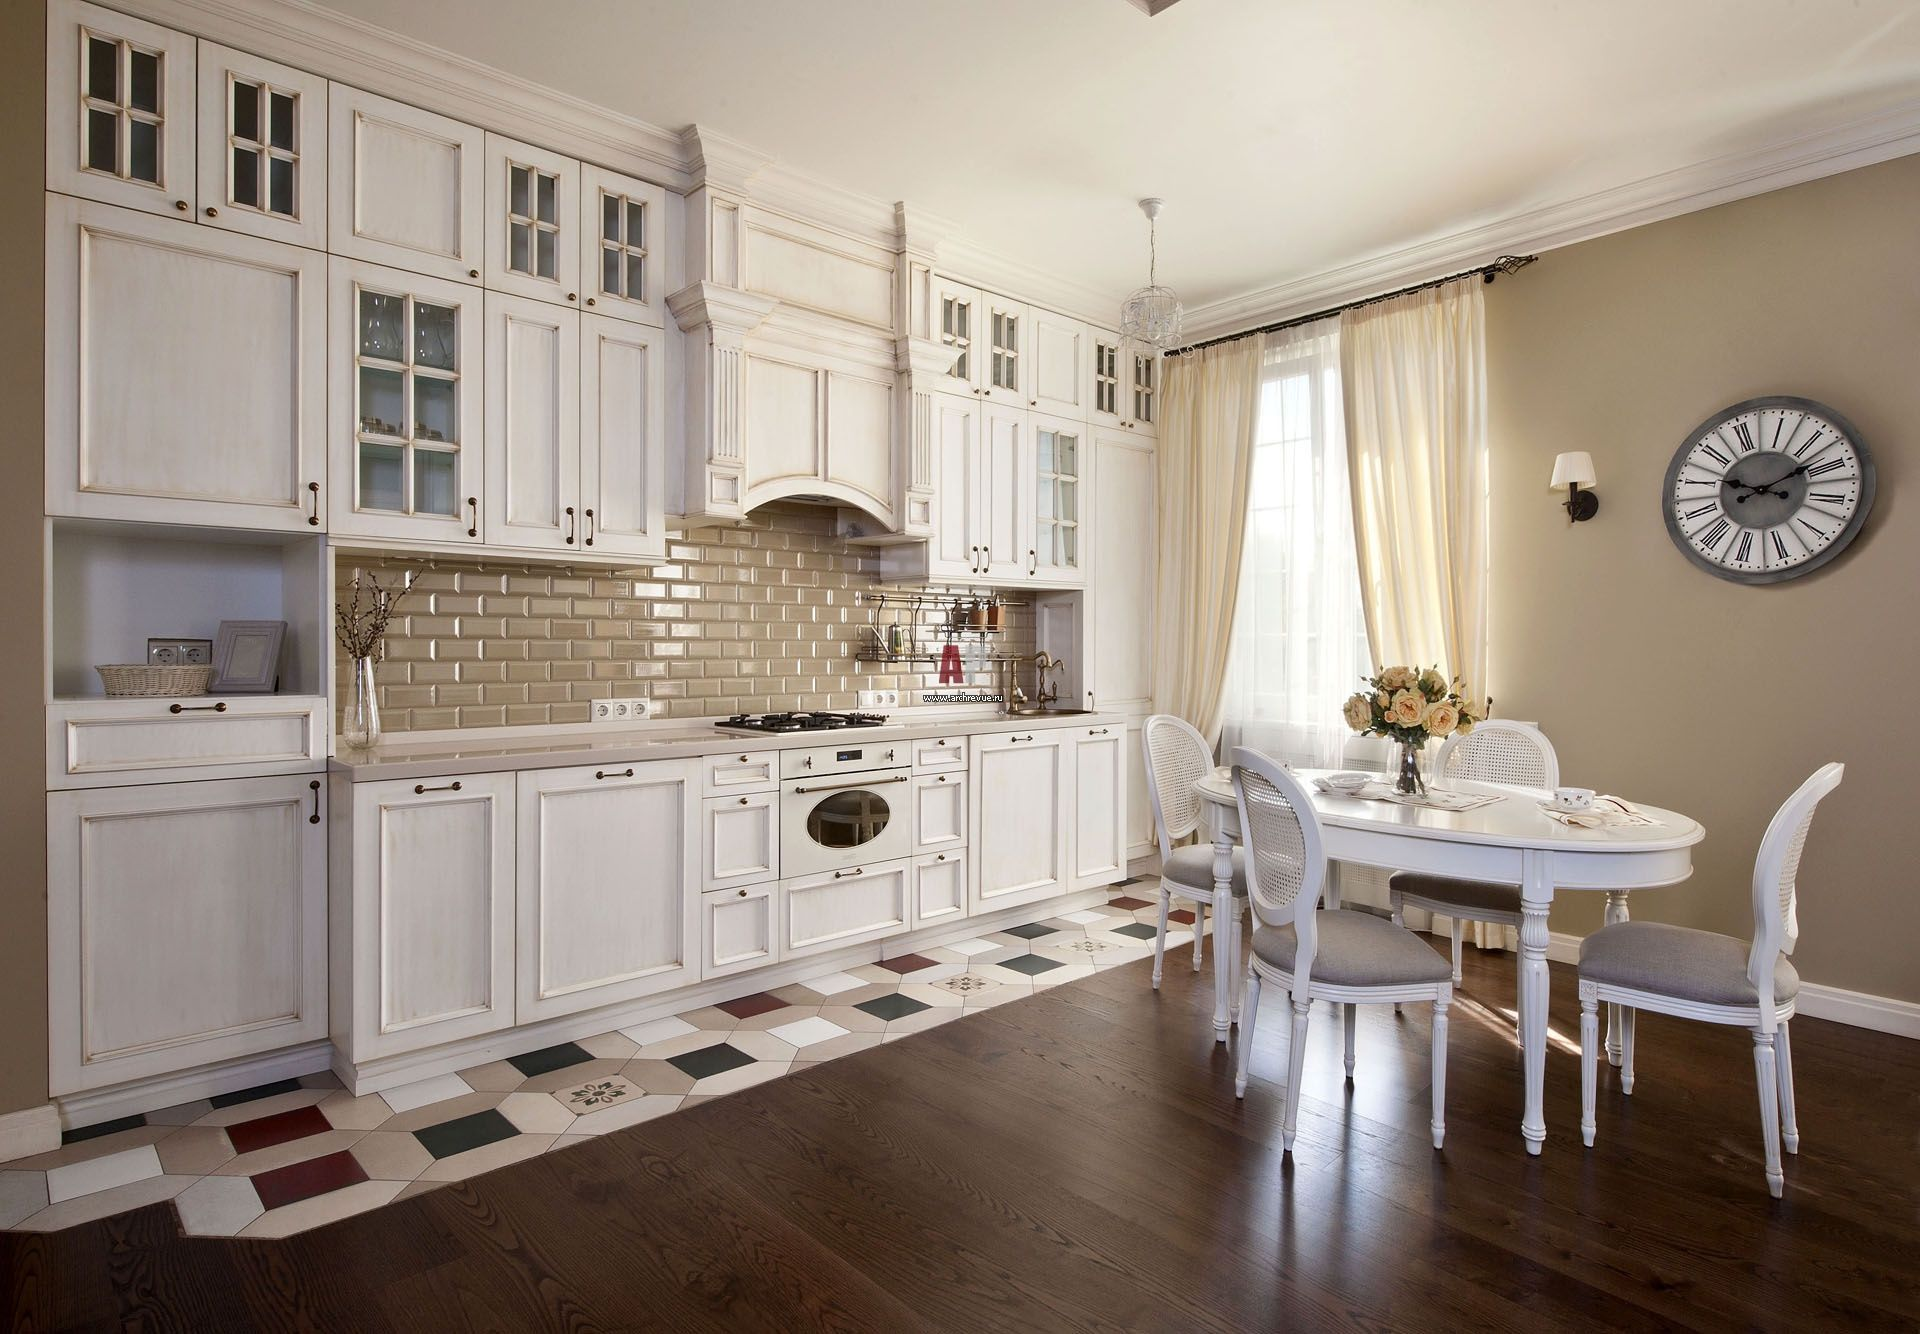 design of the kitchen dining area one row provence styled modern kitchen with dark laminate